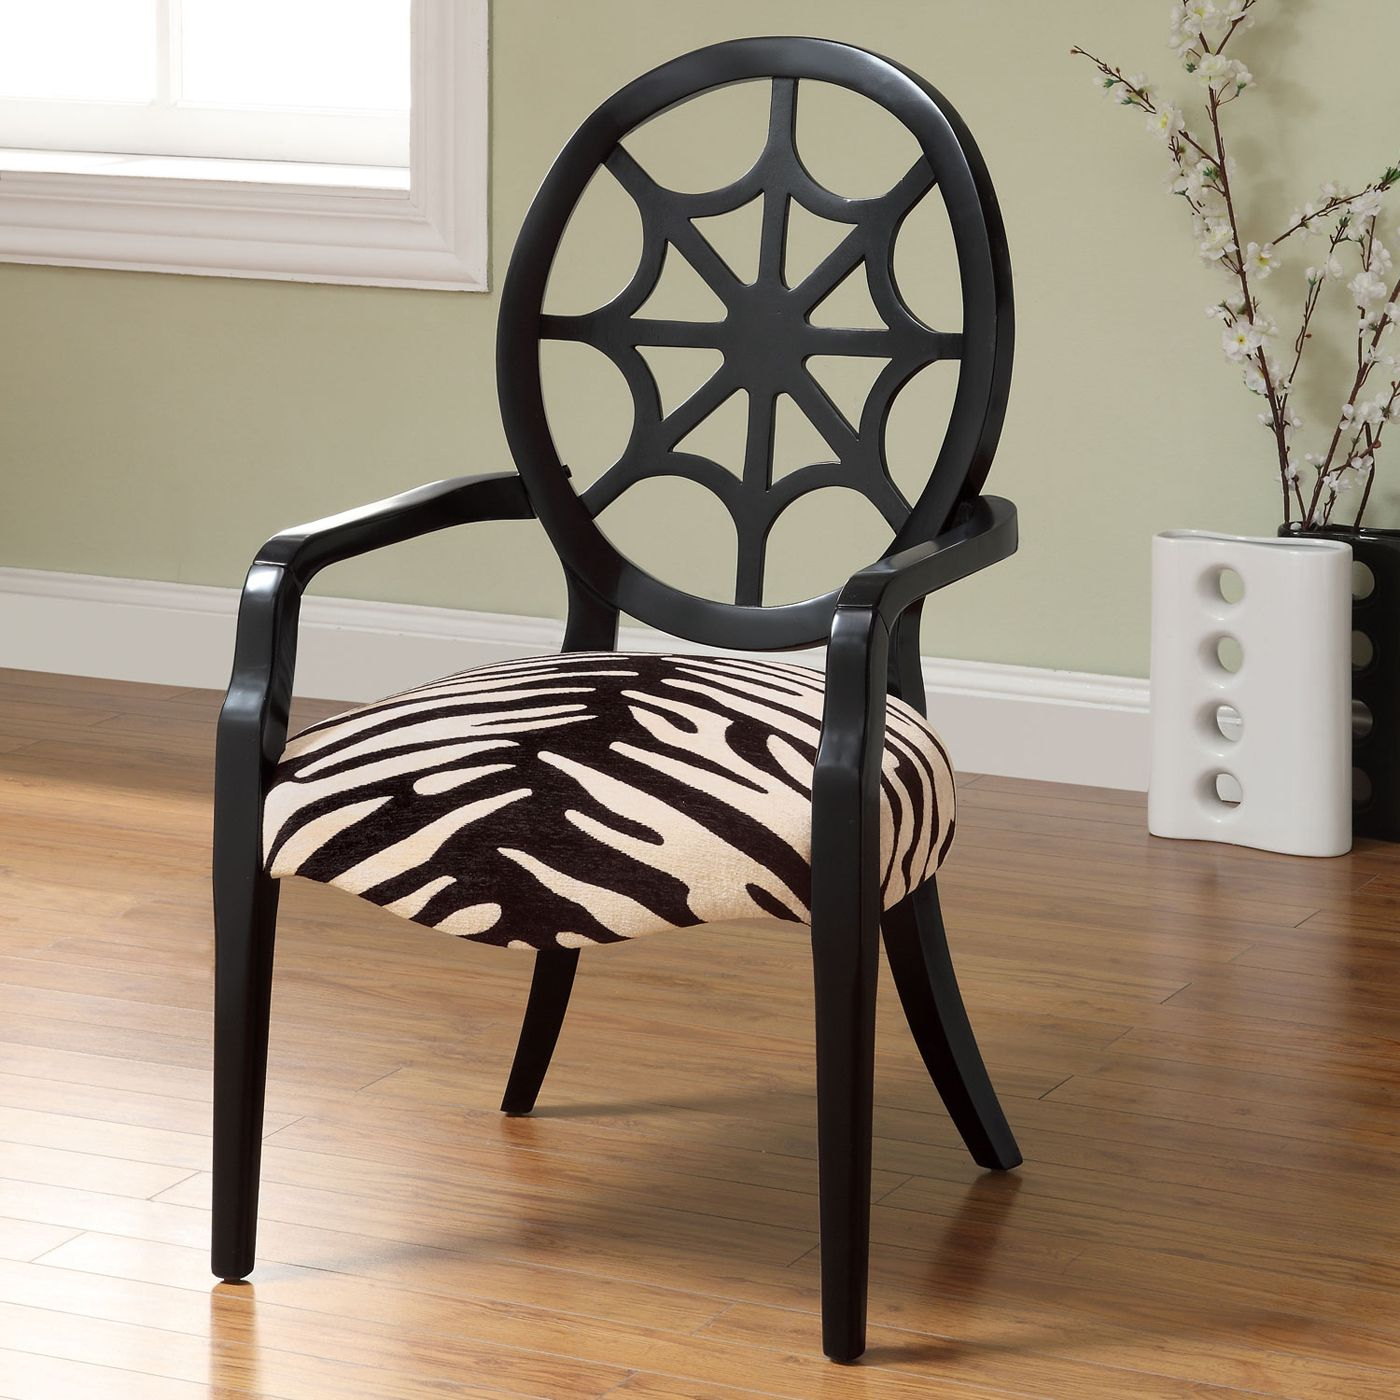 Coaster fine furniture accent chair master bedroom